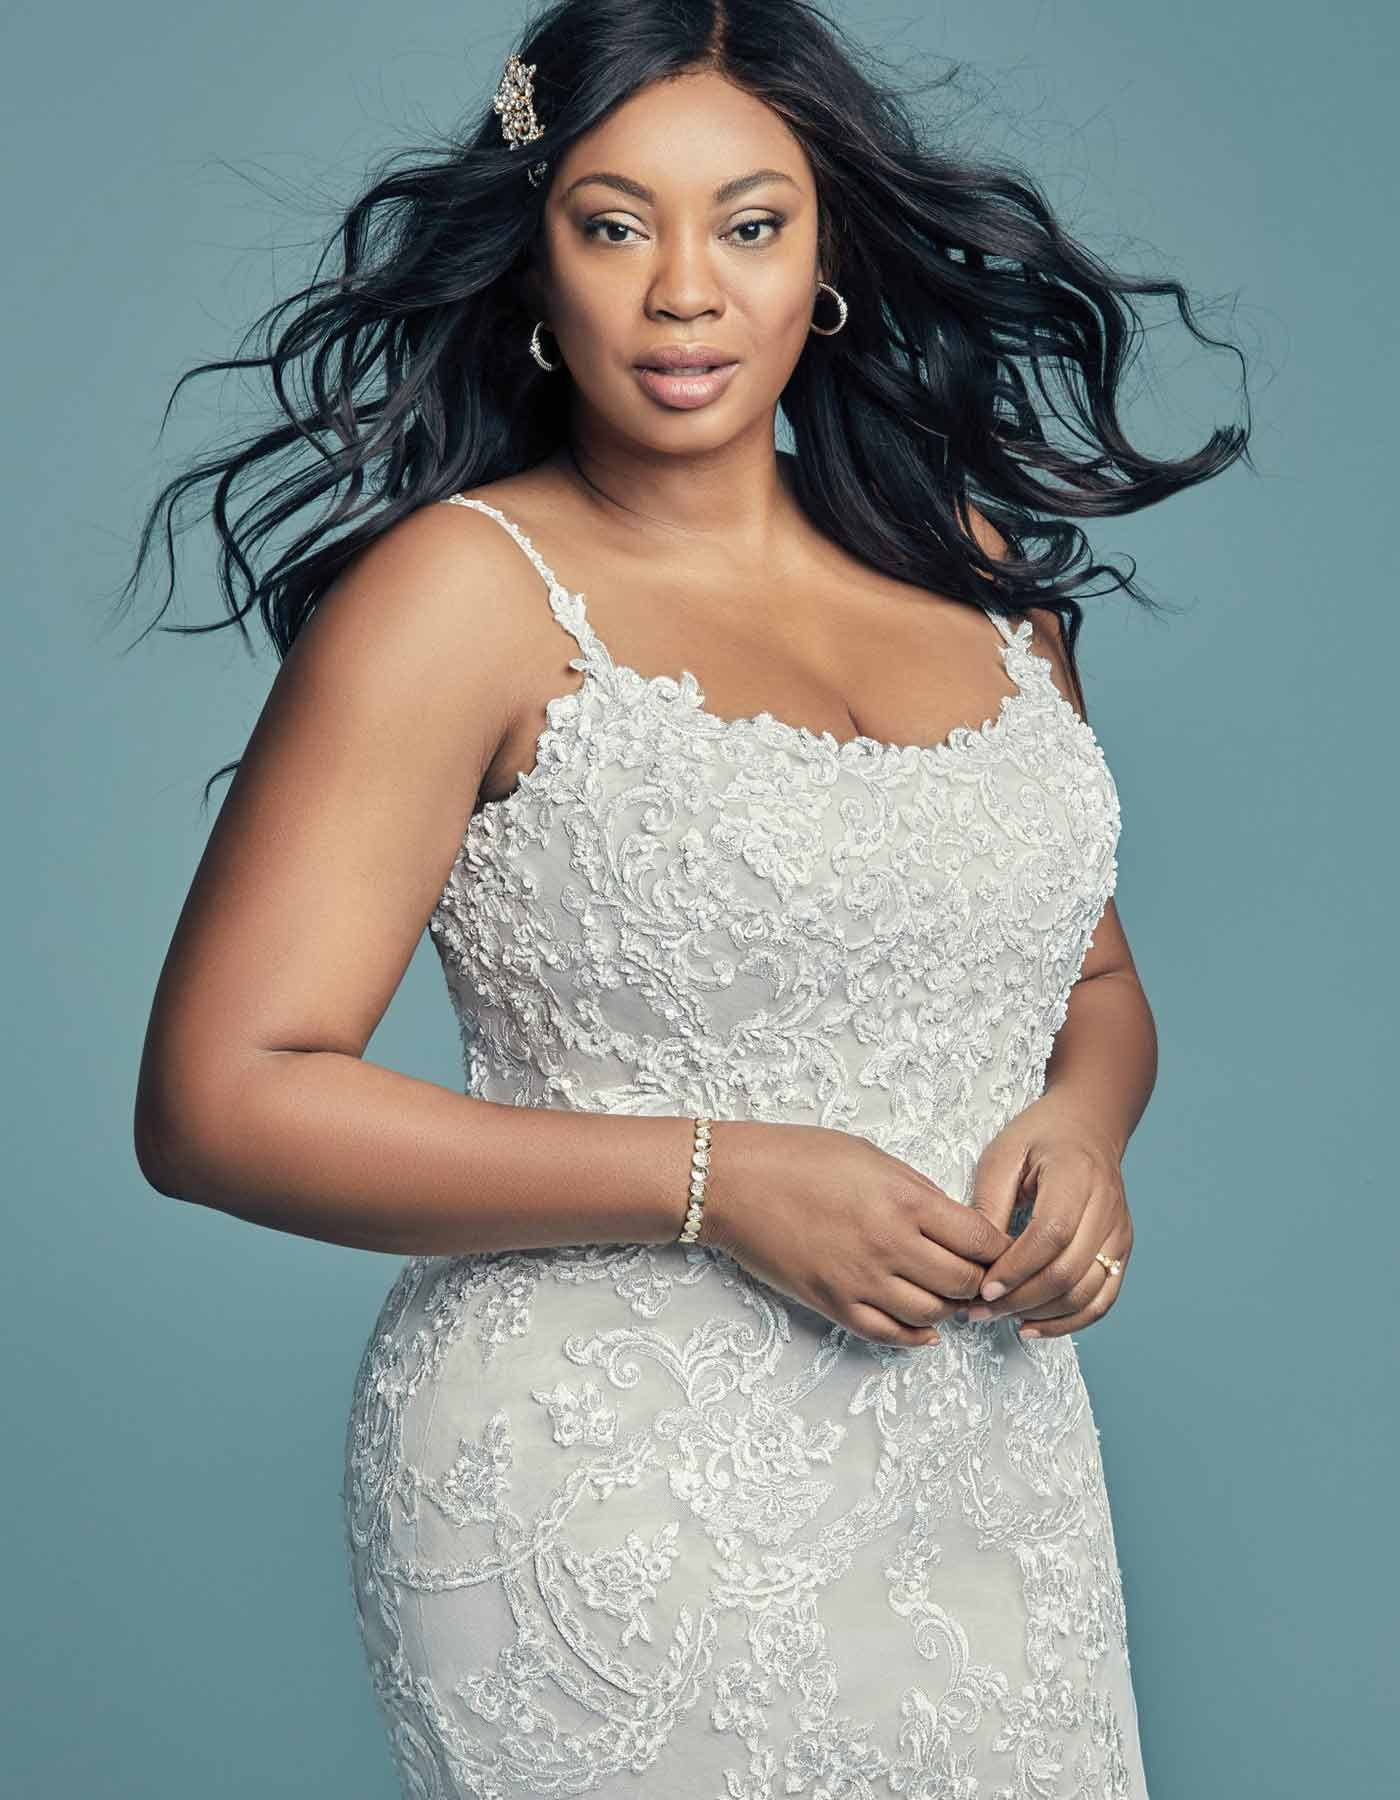 18ee2bdea37 Beaded lace motifs dance over sequin tulle in this soft yet alluring wedding  gown.  MaggieSottero  RaffaeleCiuca  WeddingDress  PlusSize  Curve